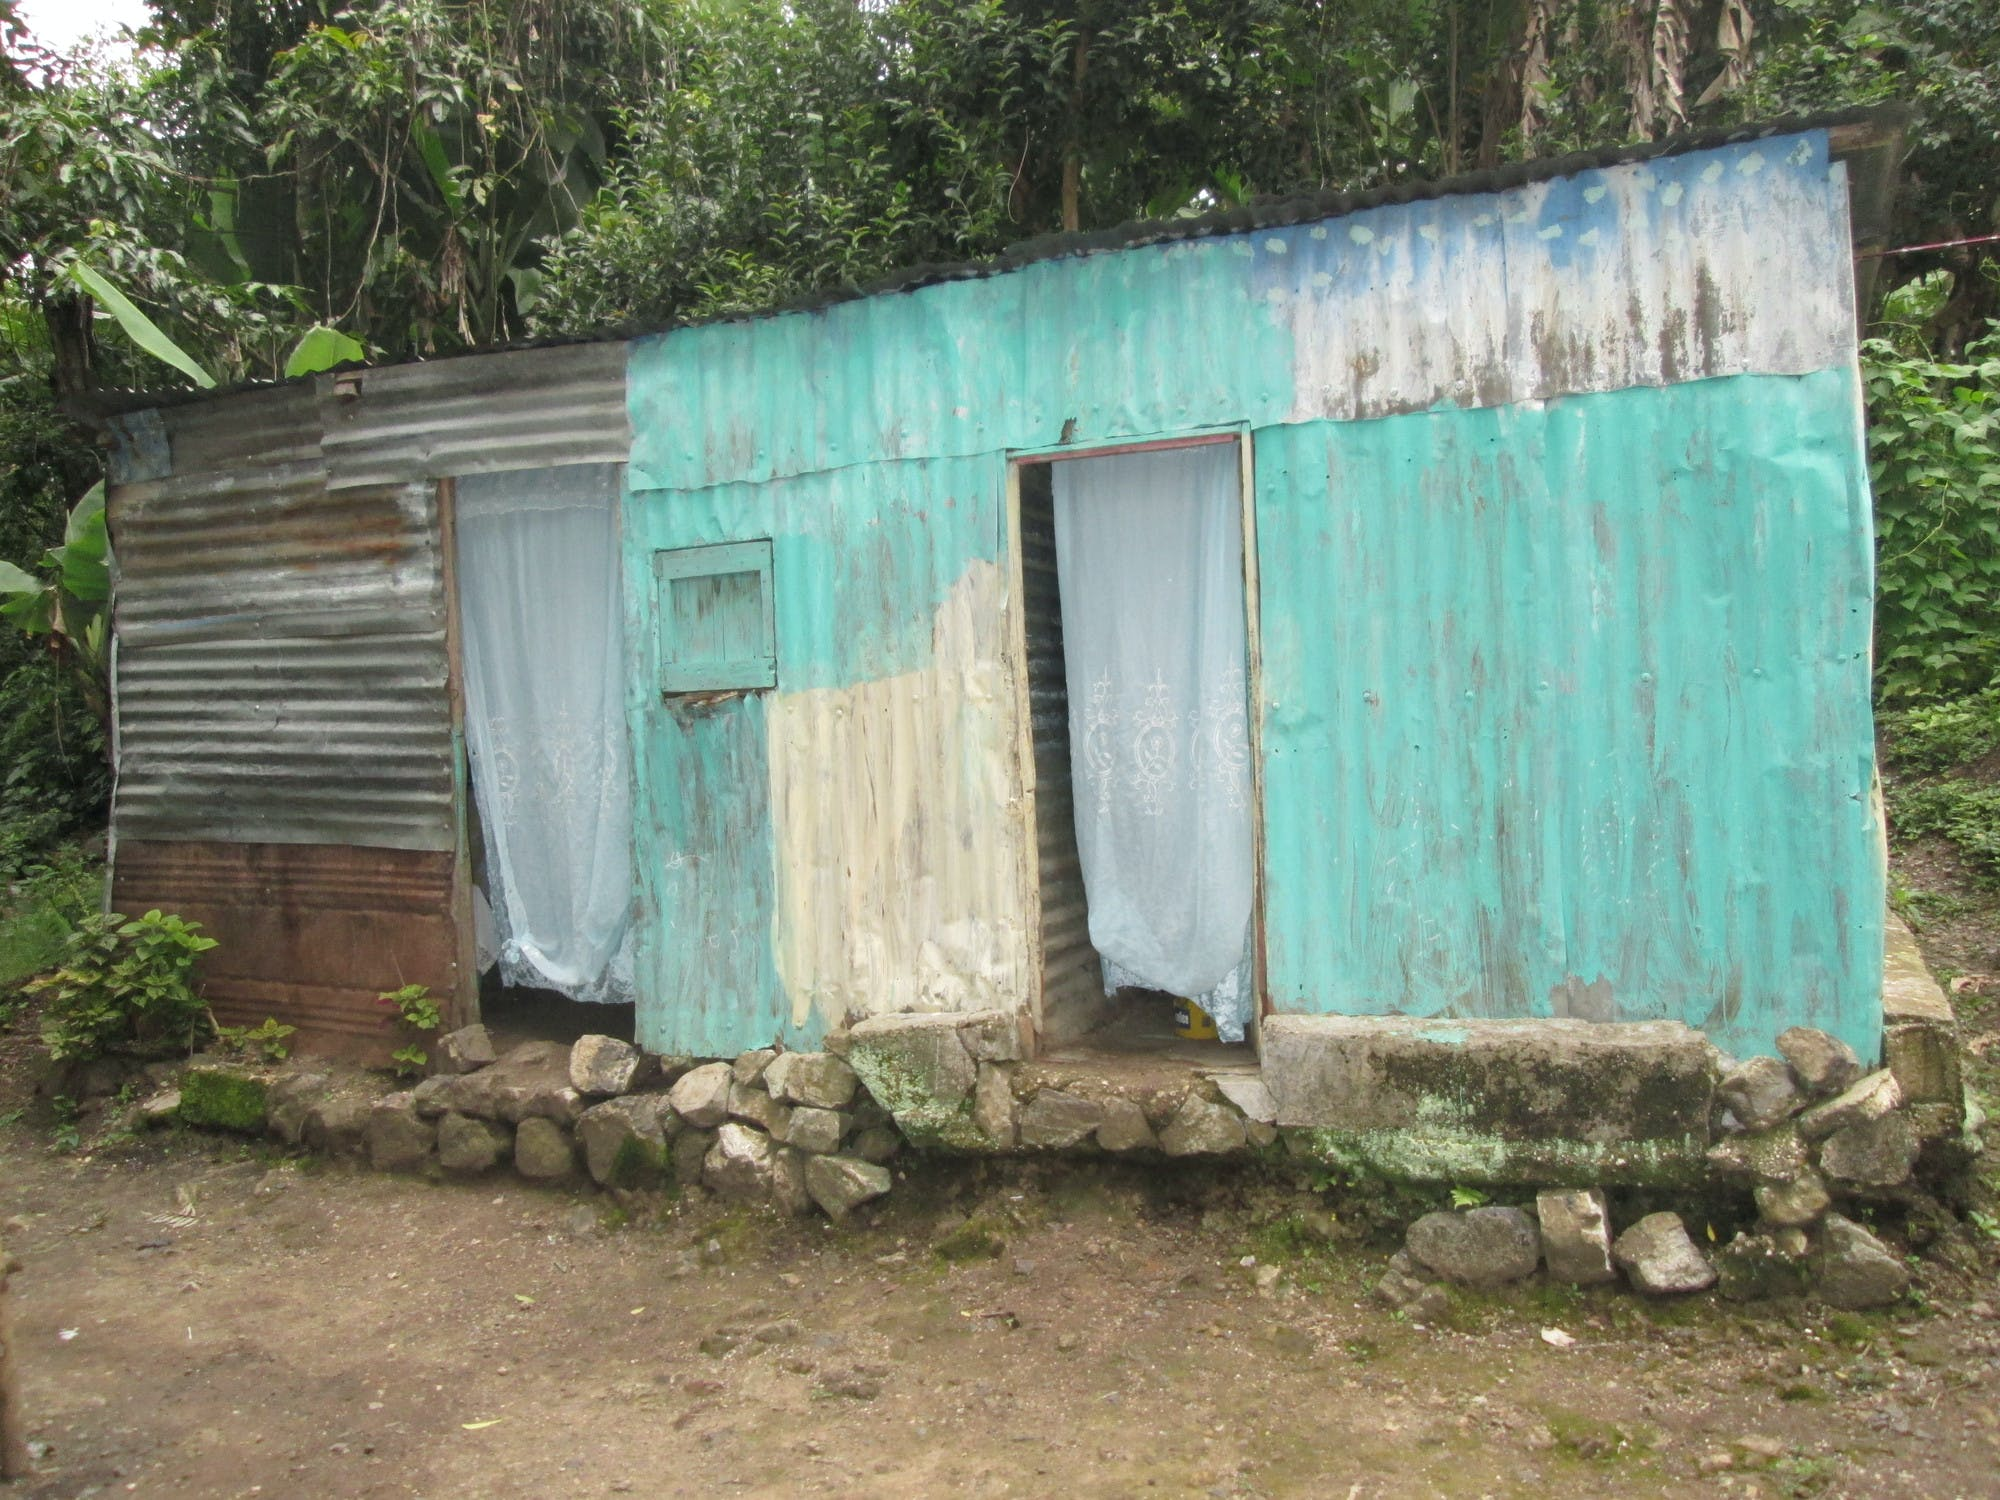 House in Haiti